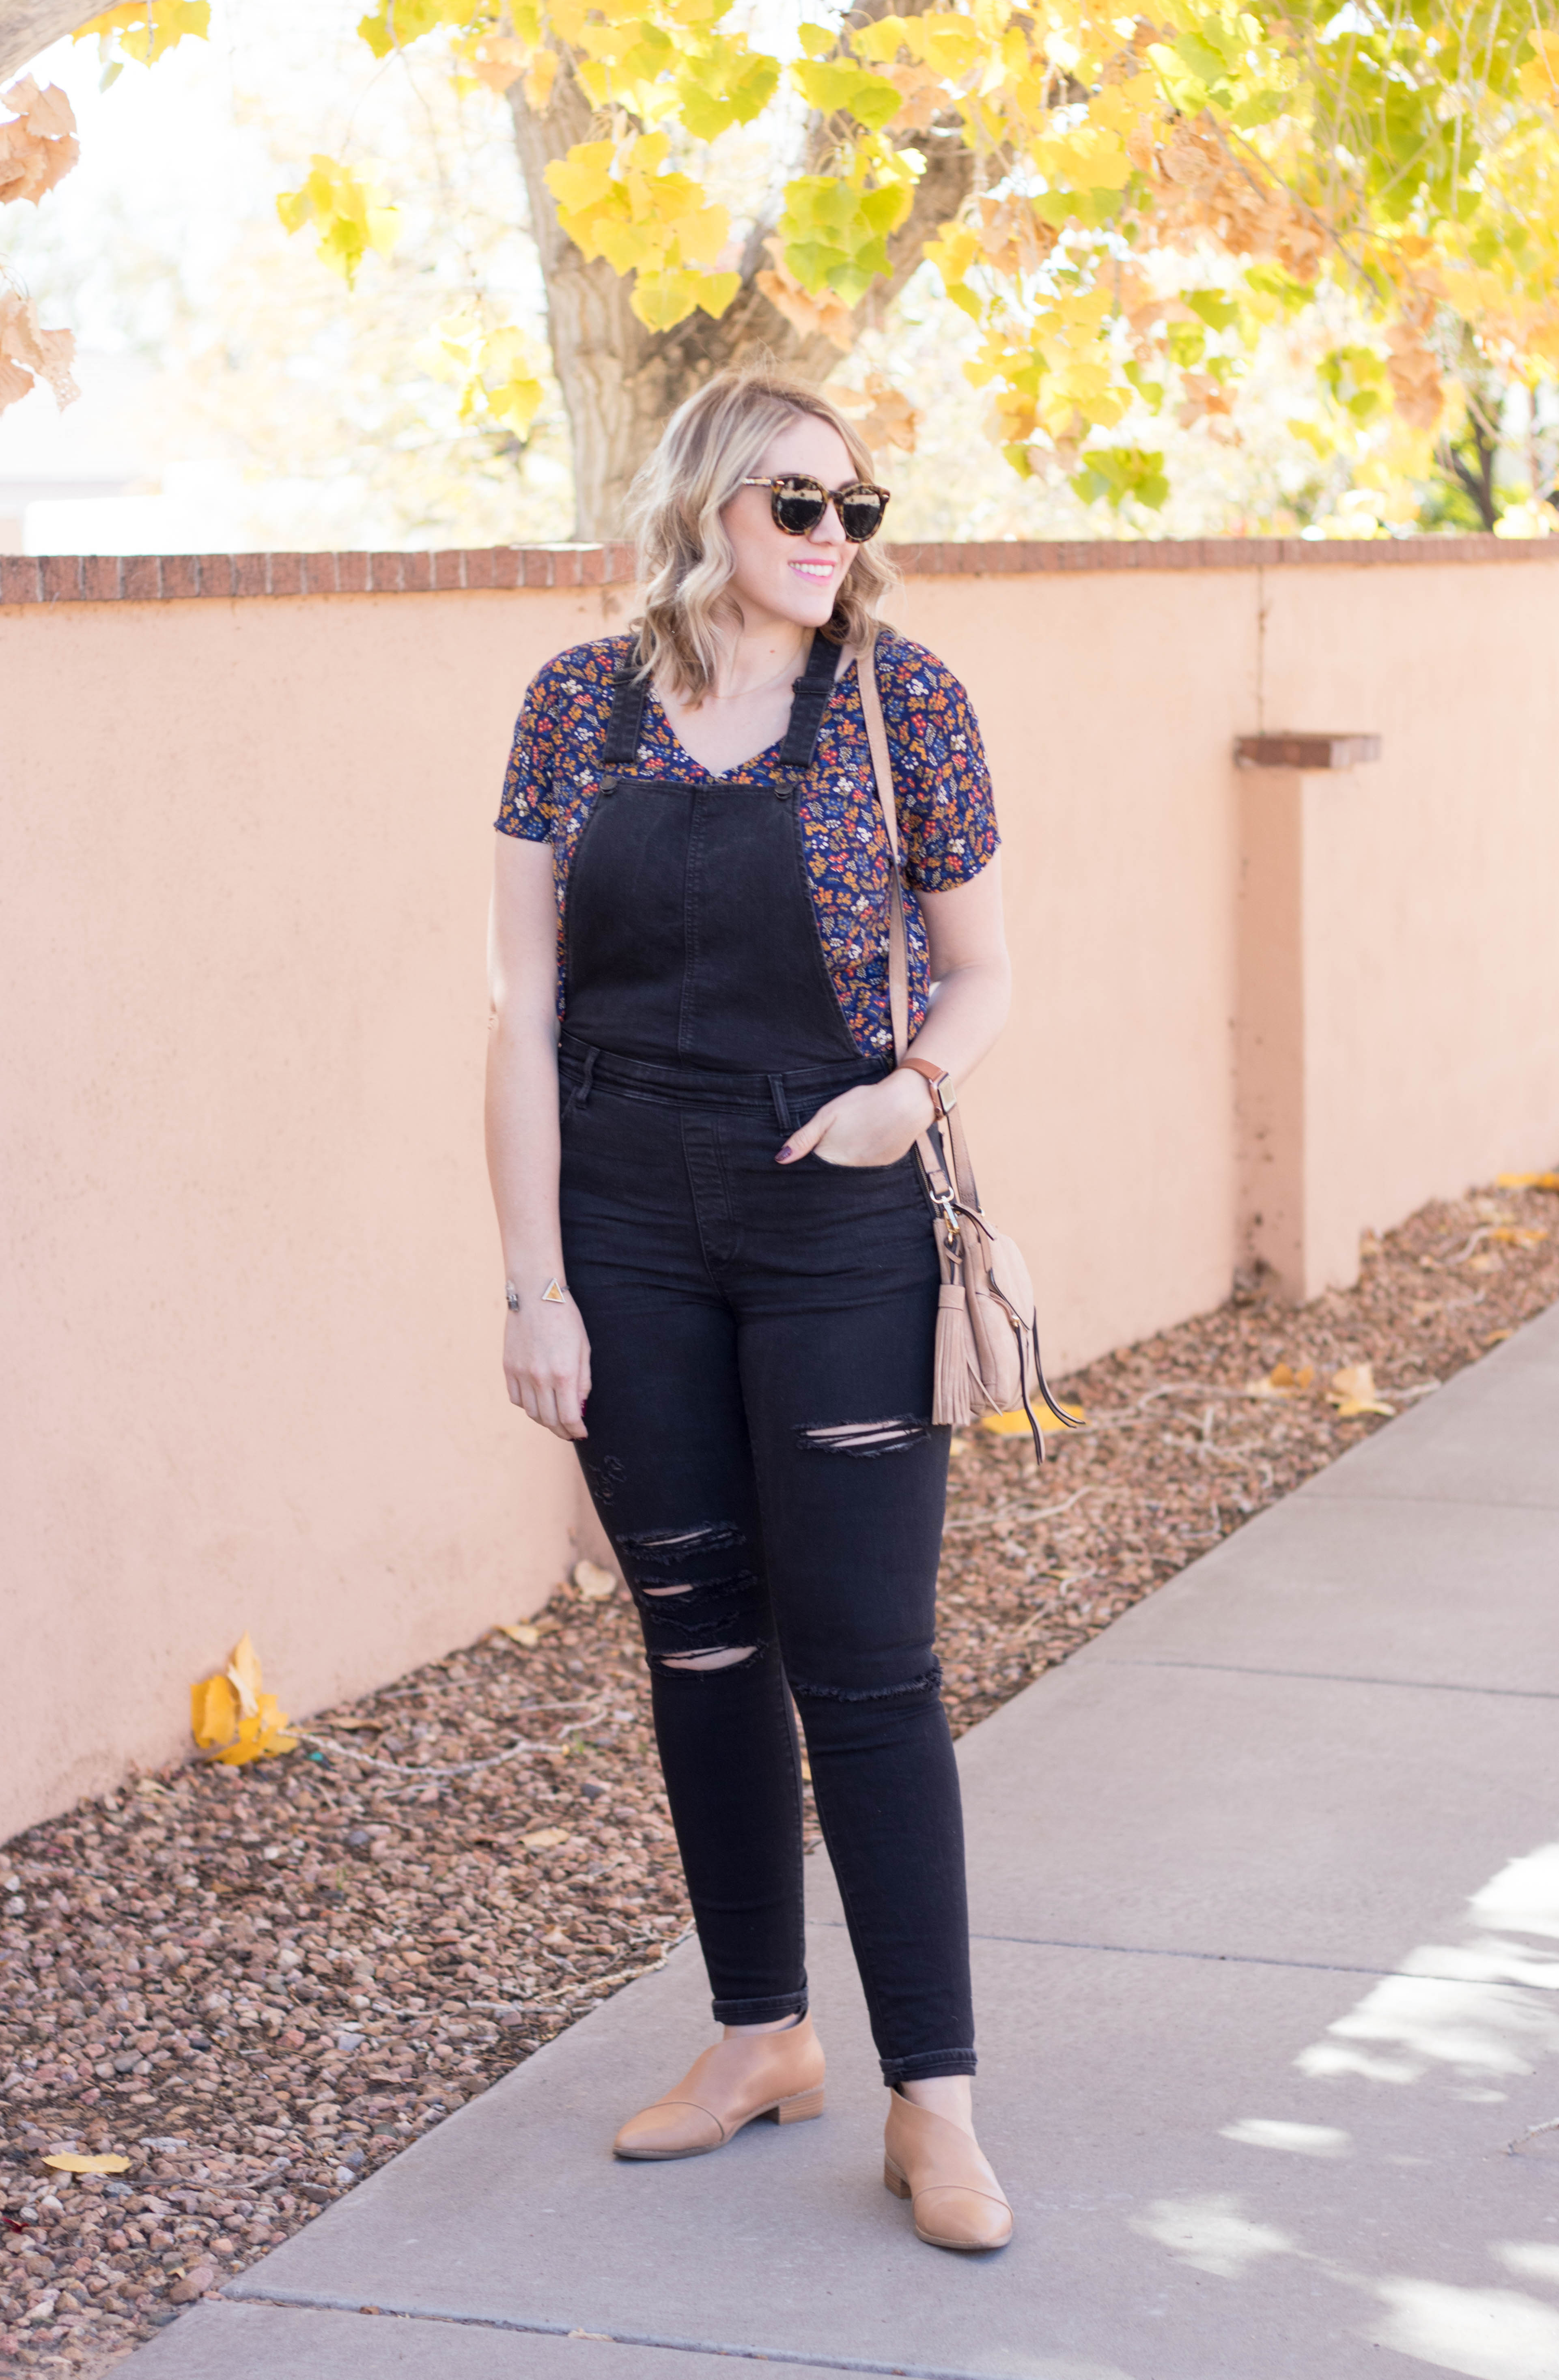 cute overalls outfit for fall #tallfashion #falloutfit #madewelloutfit